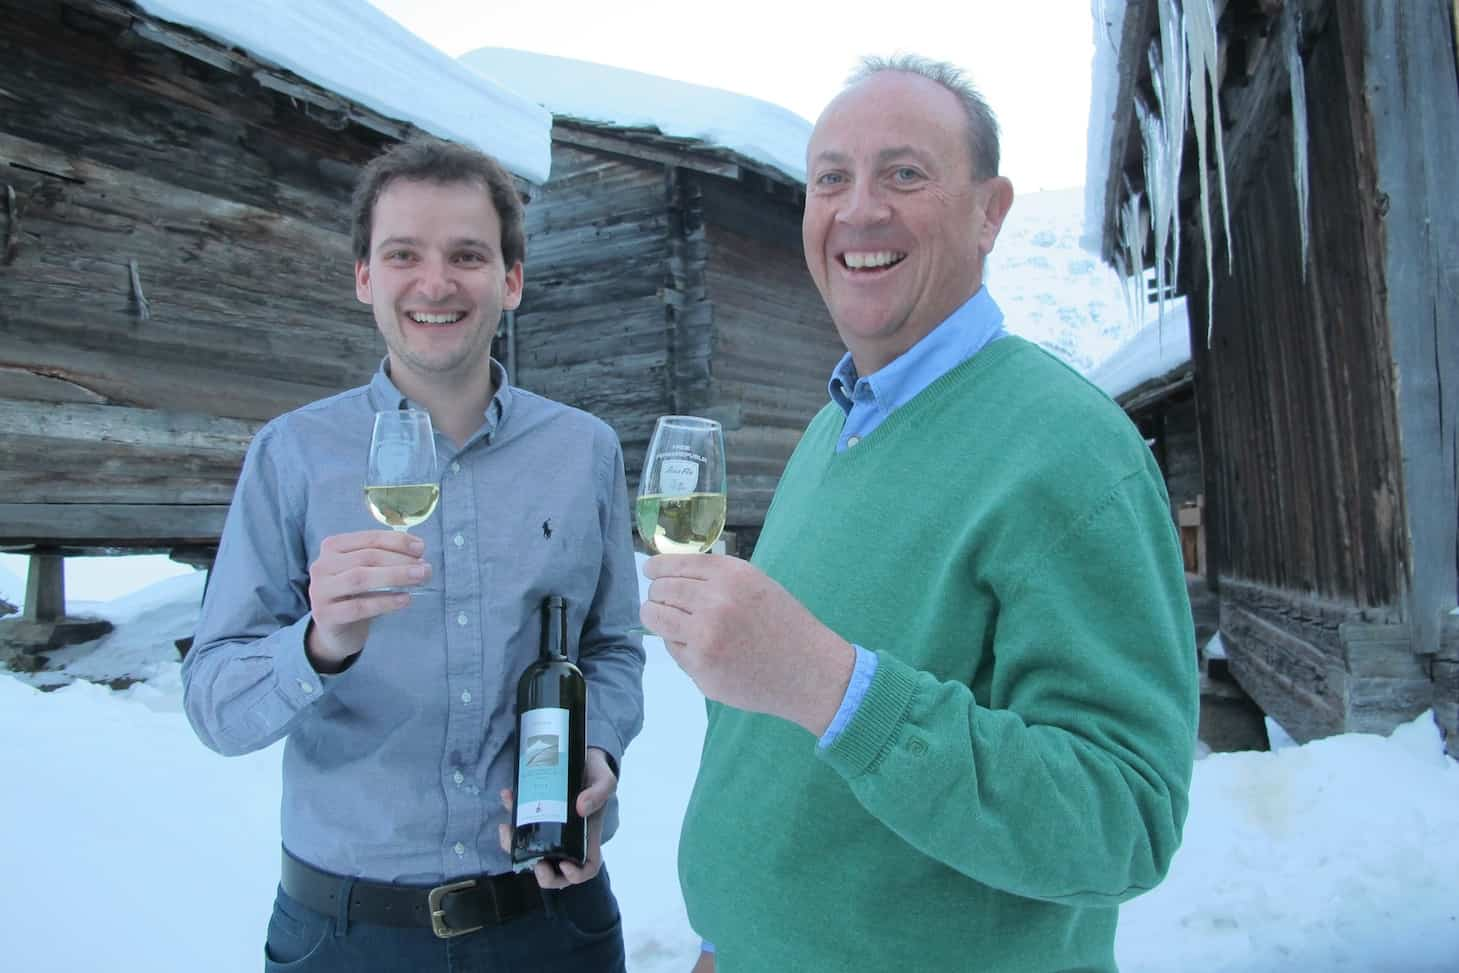 Pascal and Roger sampling the latest vintage